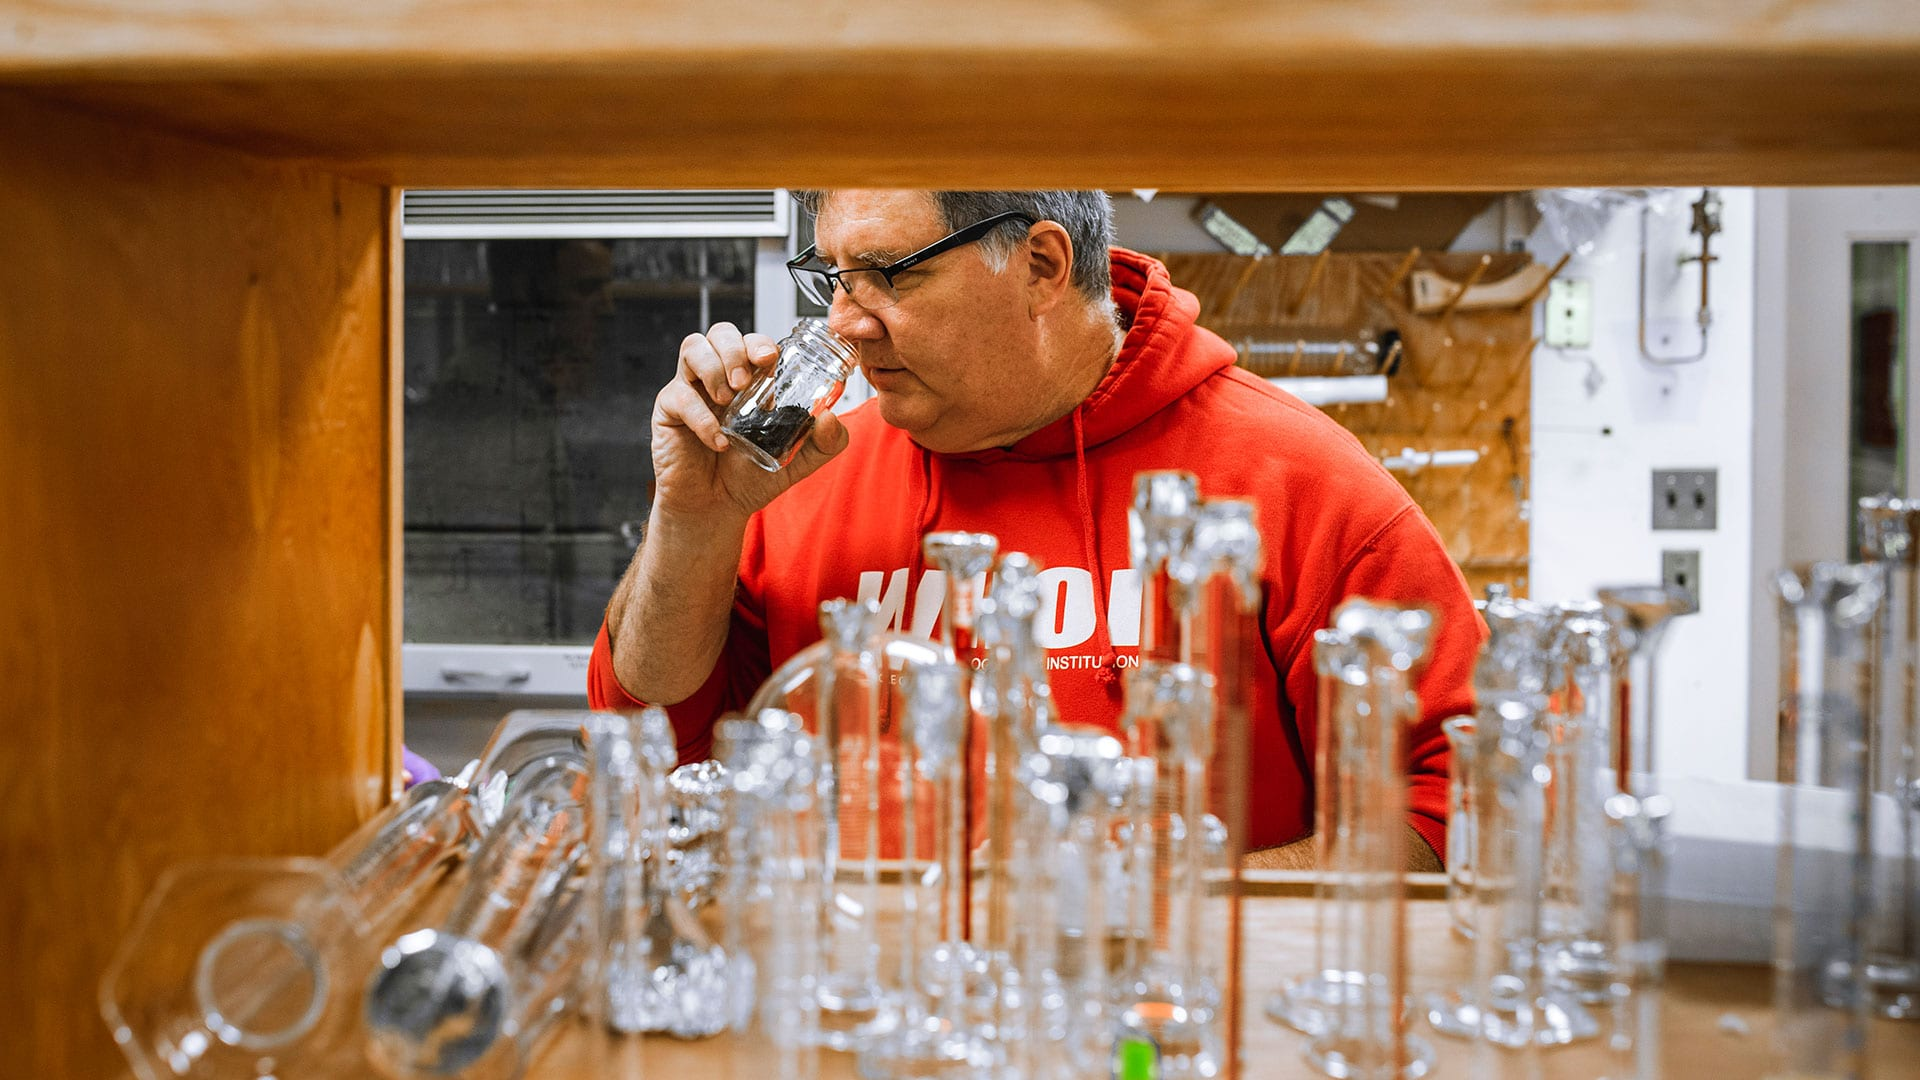 Senior researcher and WHOI marine geochemist, Bob Nelson, notices the diesel-like odor in a small bisection of a sediment core from Wild Harbor – a sign of the oil that remained 50 years after the spill. (Photo by Daniel Hentz, Woods Hole Oceanographic Institution)